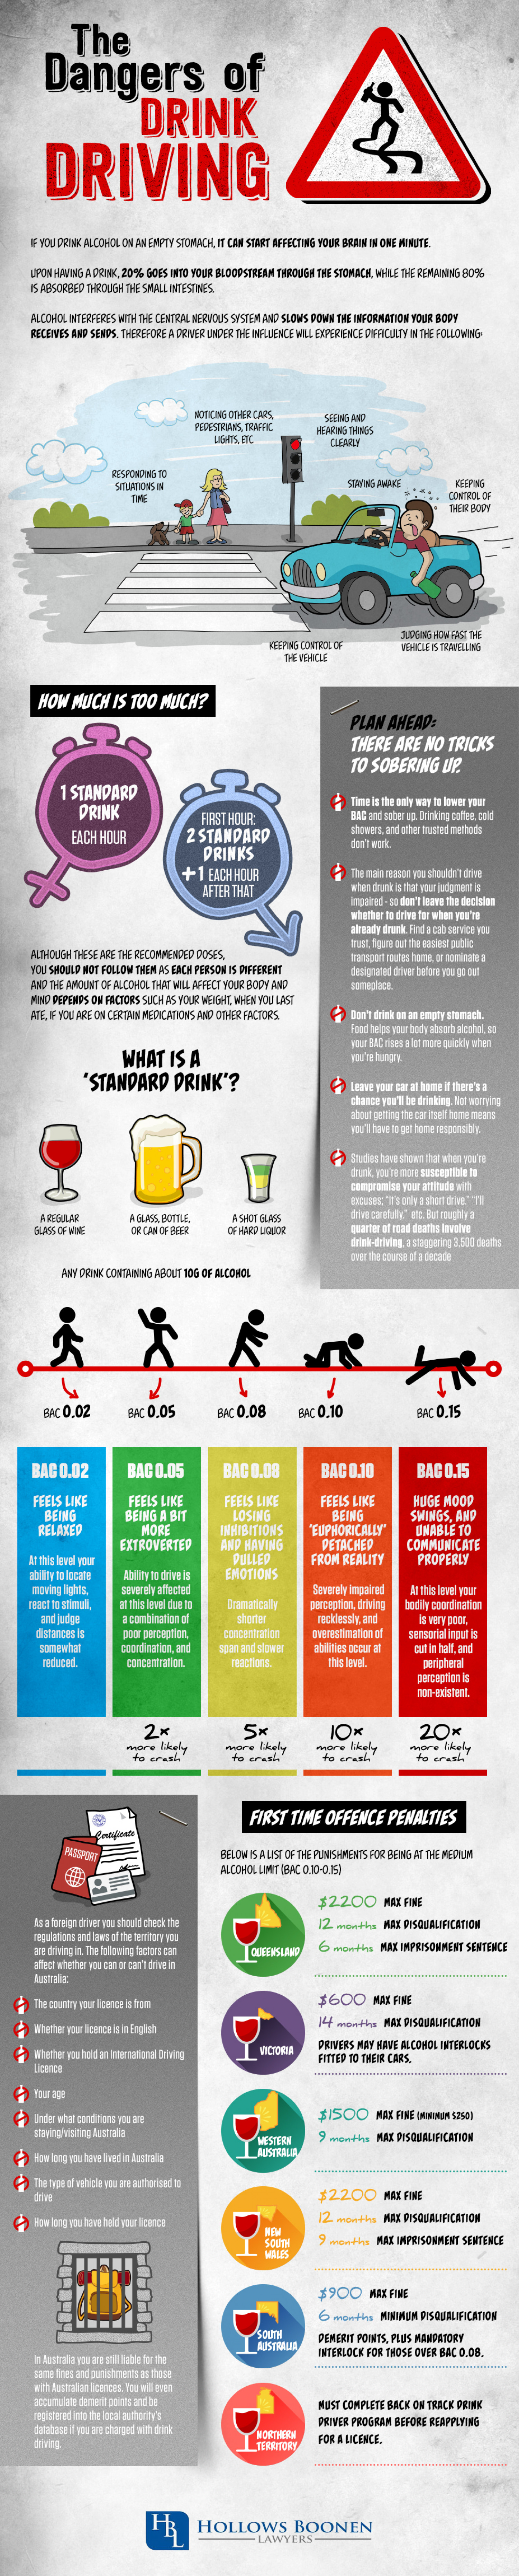 Dangers of Drink Driving Infographic